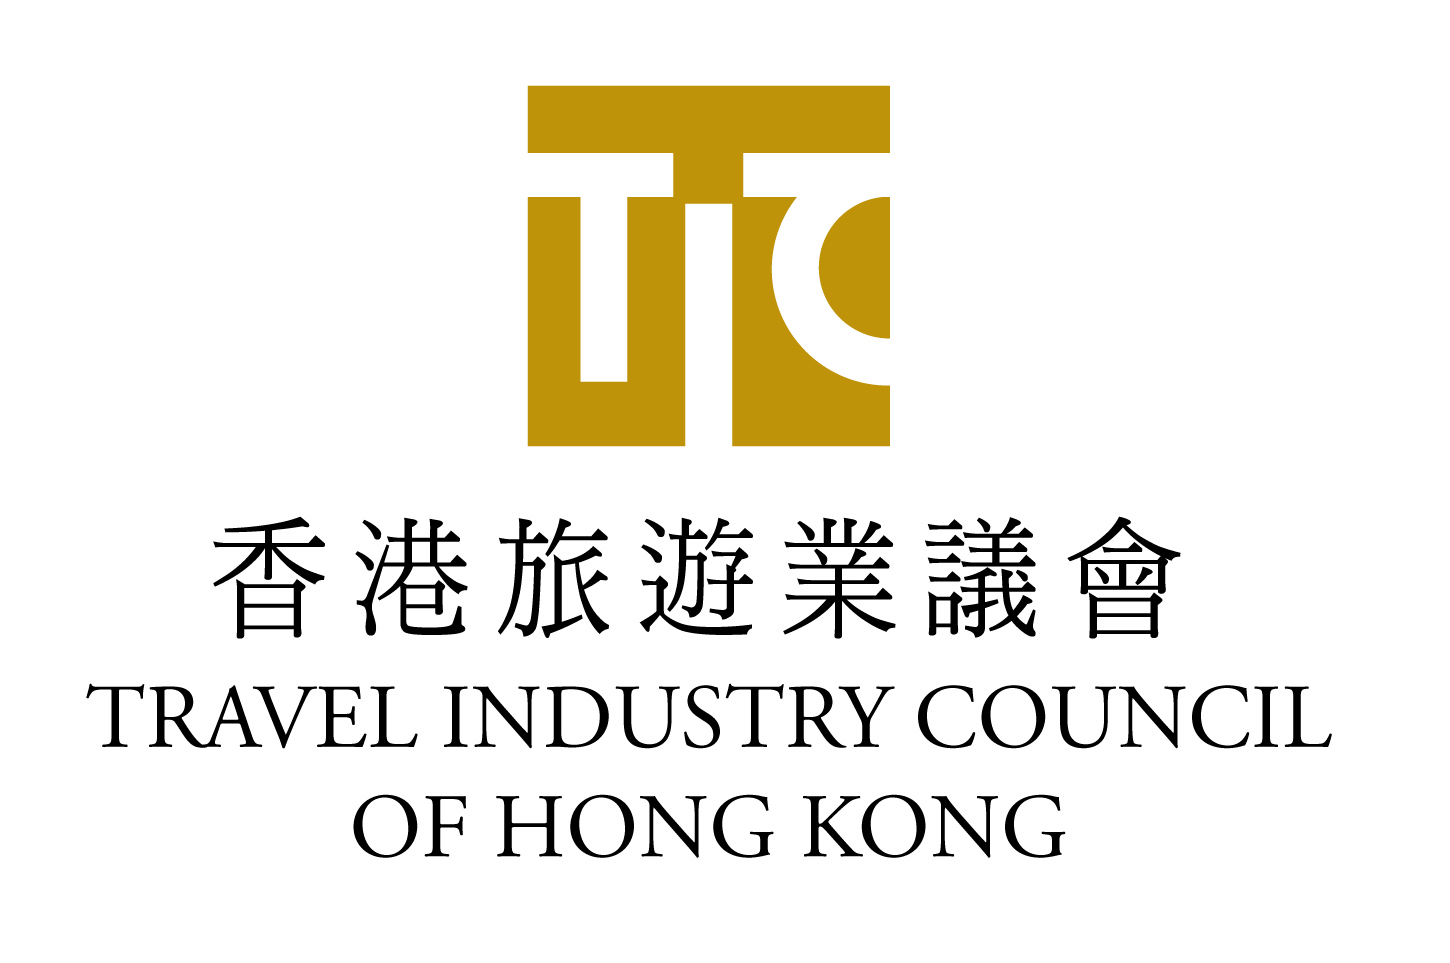 Travel Industry Council of Hong Kong 香港旅遊業議會